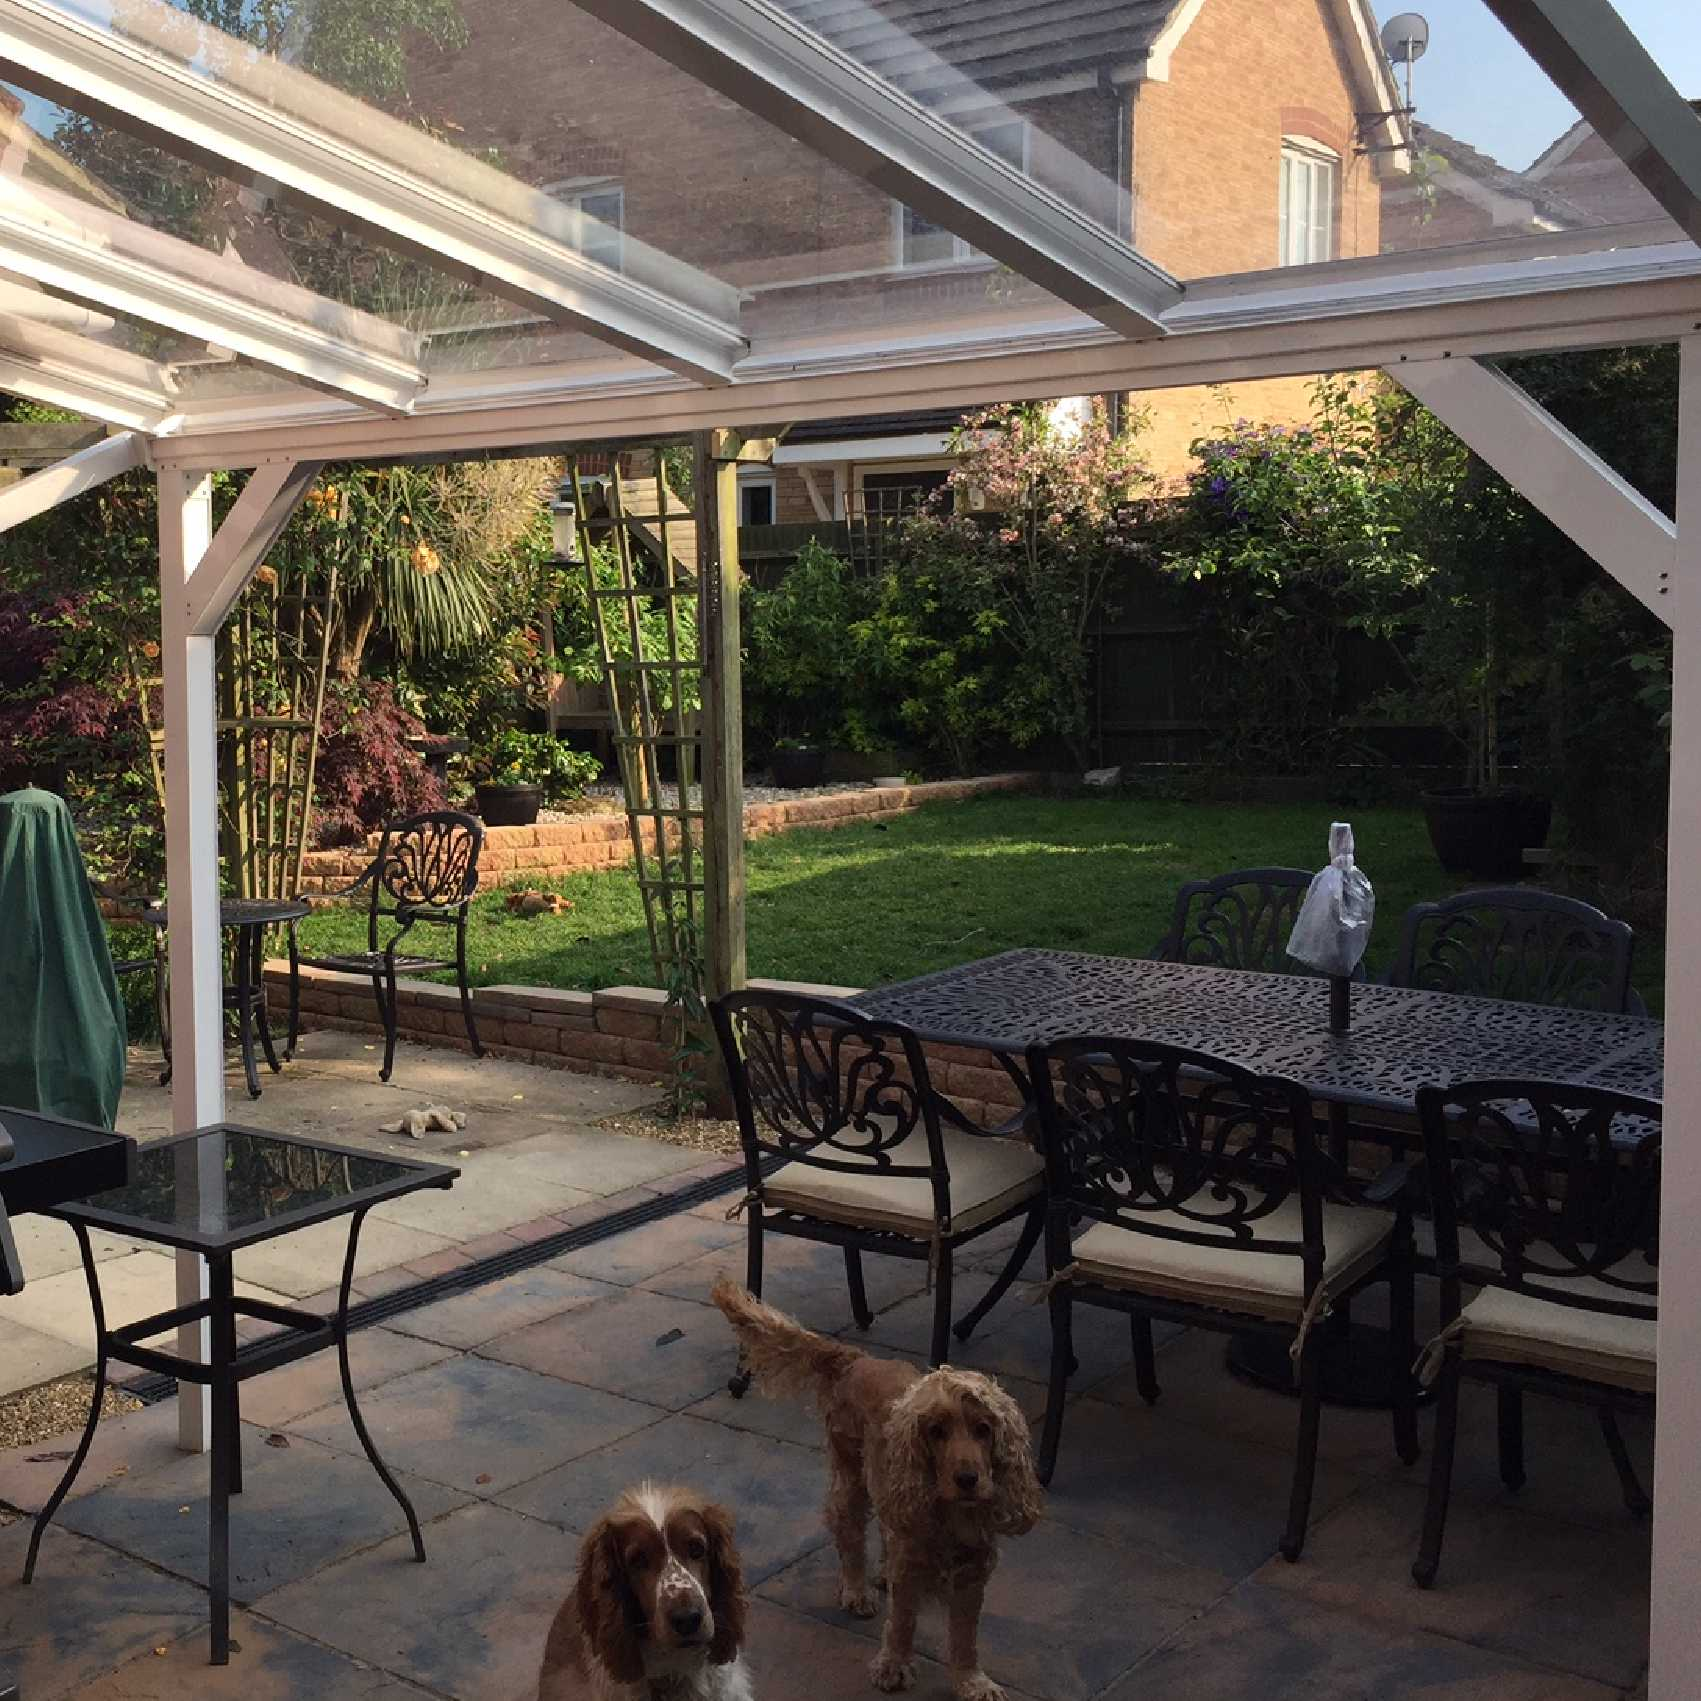 Affordable Omega Smart White Lean-To Canopy with 6mm Glass Clear Plate Polycarbonate Glazing - 2.8m (W) x 2.0m (P), (2) Supporting Posts